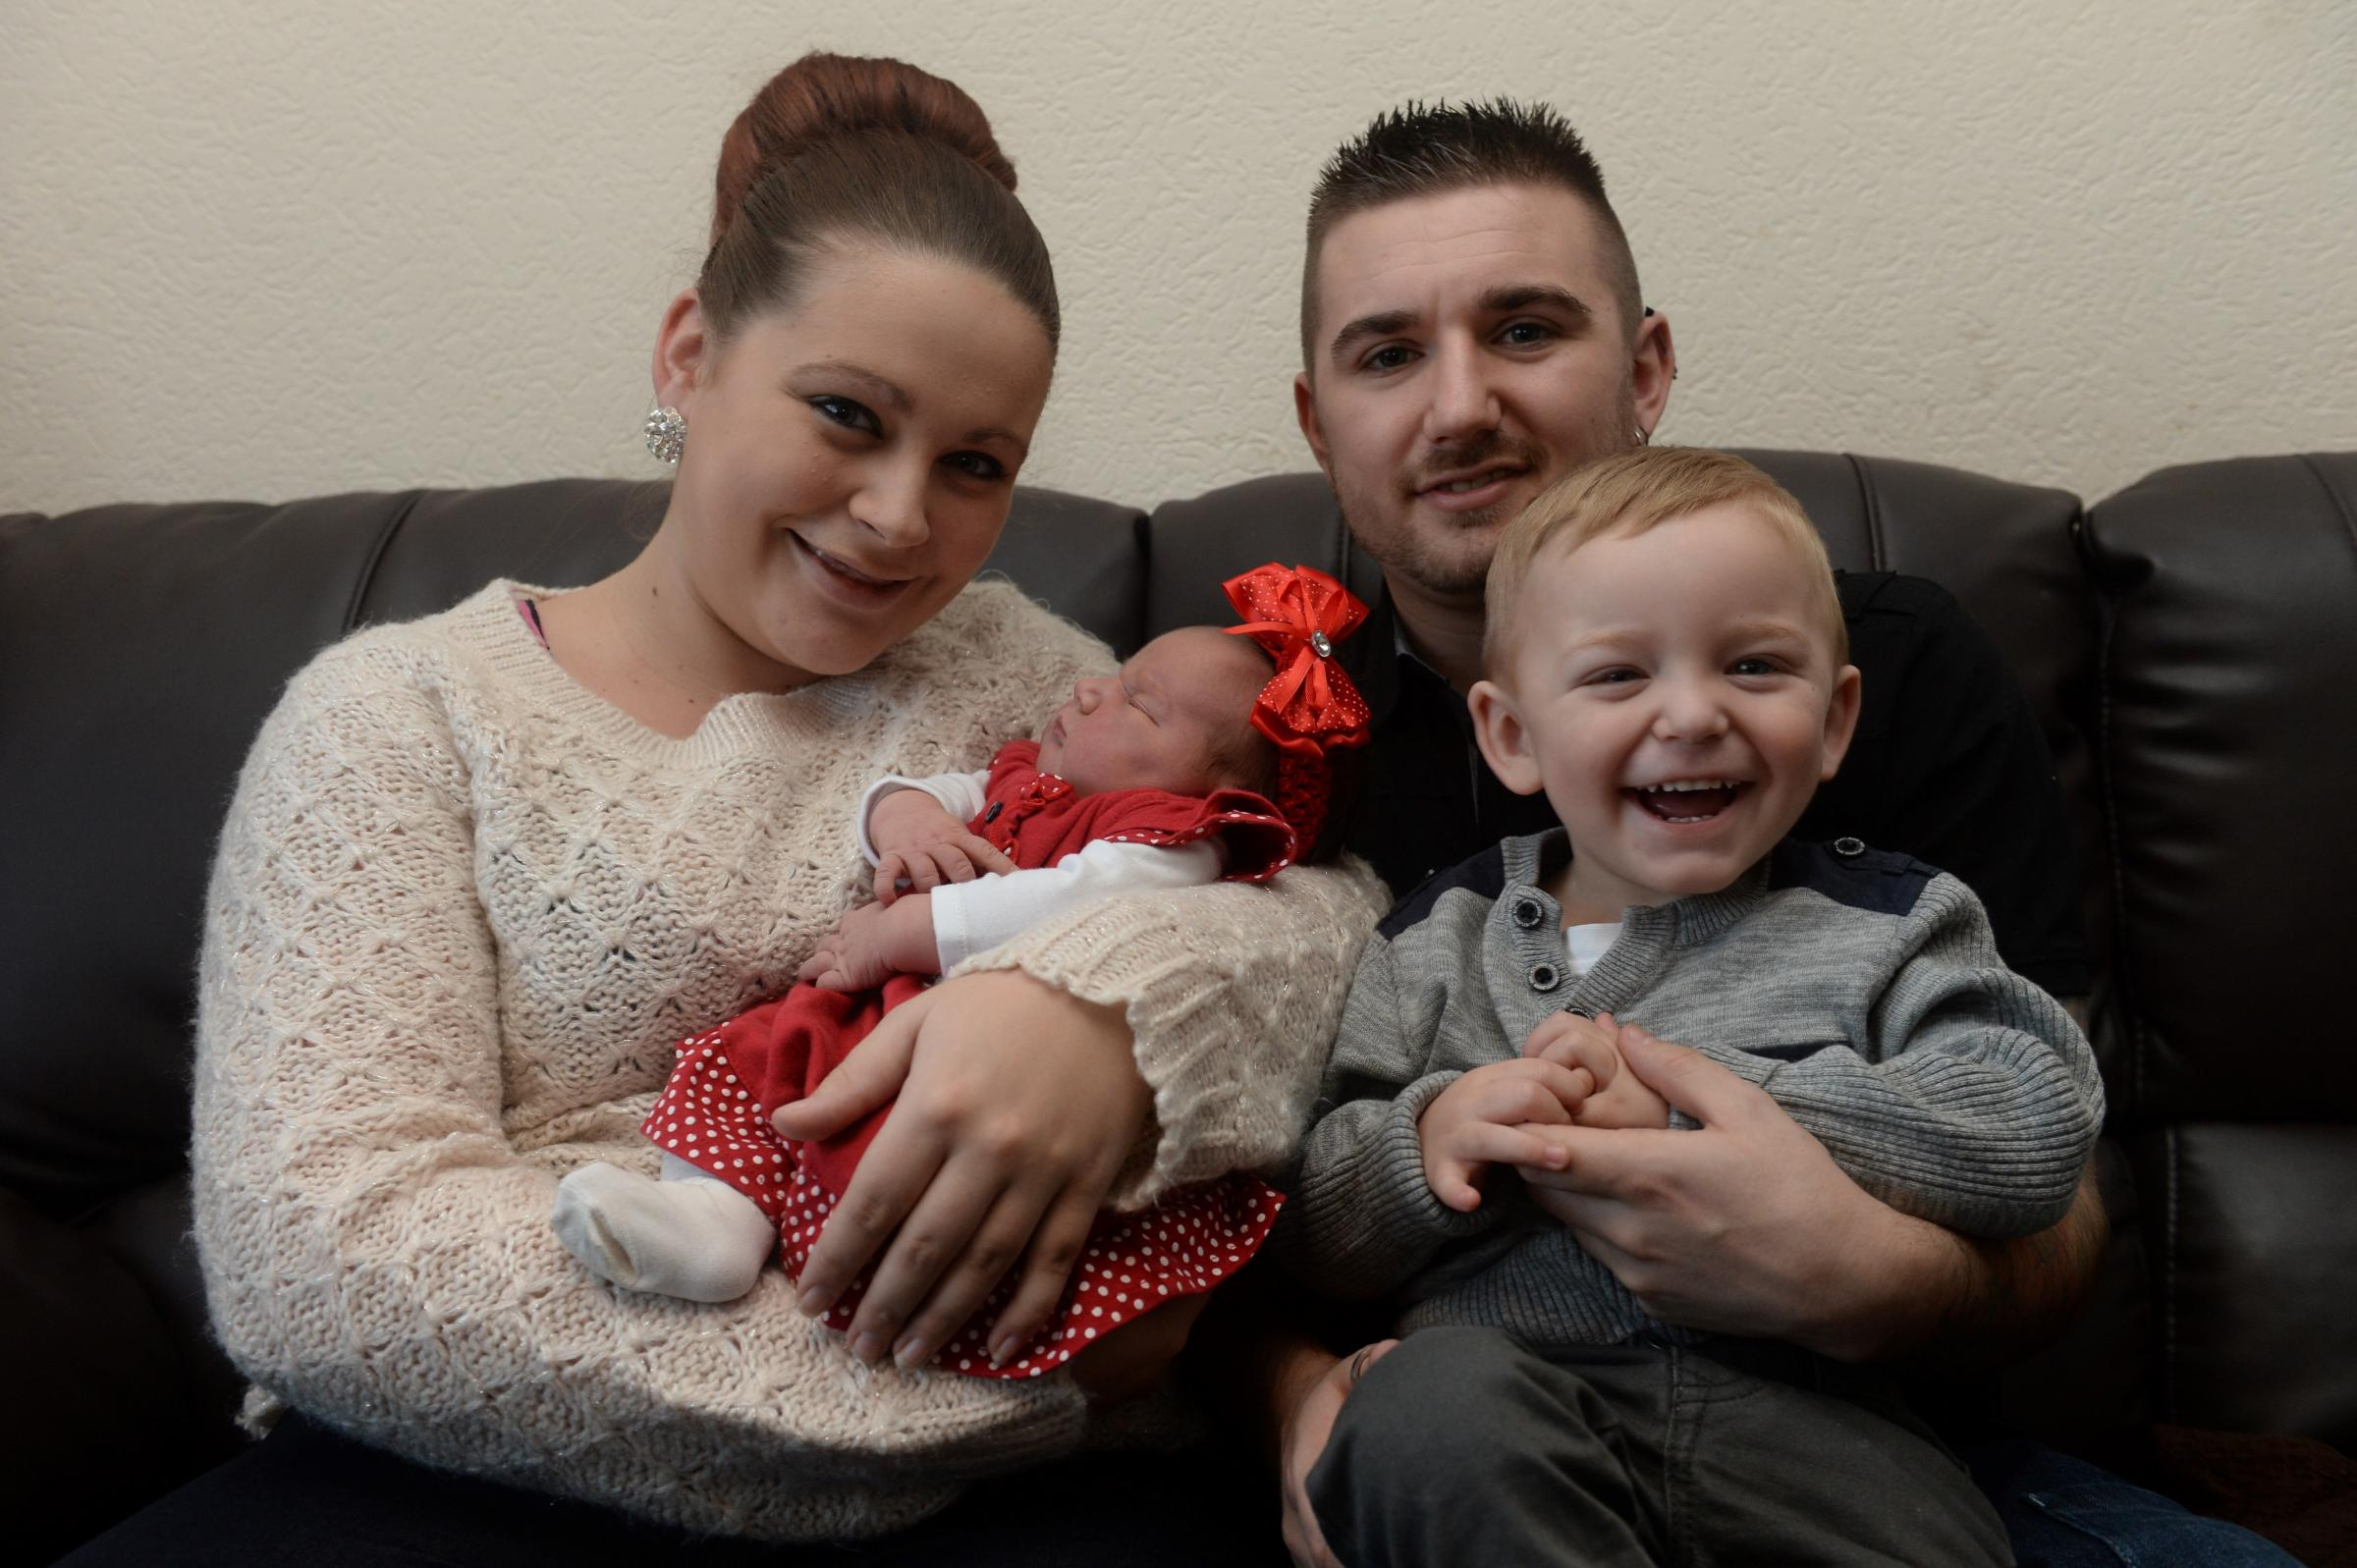 Christmas Babies. Baby Emillie Brehony-Bevan was born at the Royal Gwent Hospital in Newport at 8:01pm on Christmas Day. Baby Emillie Brehony-Bevan with her Mum Hannah Brehony, Dad Aaron Bevan and brother Ollie at home in Bettws. (3169975)